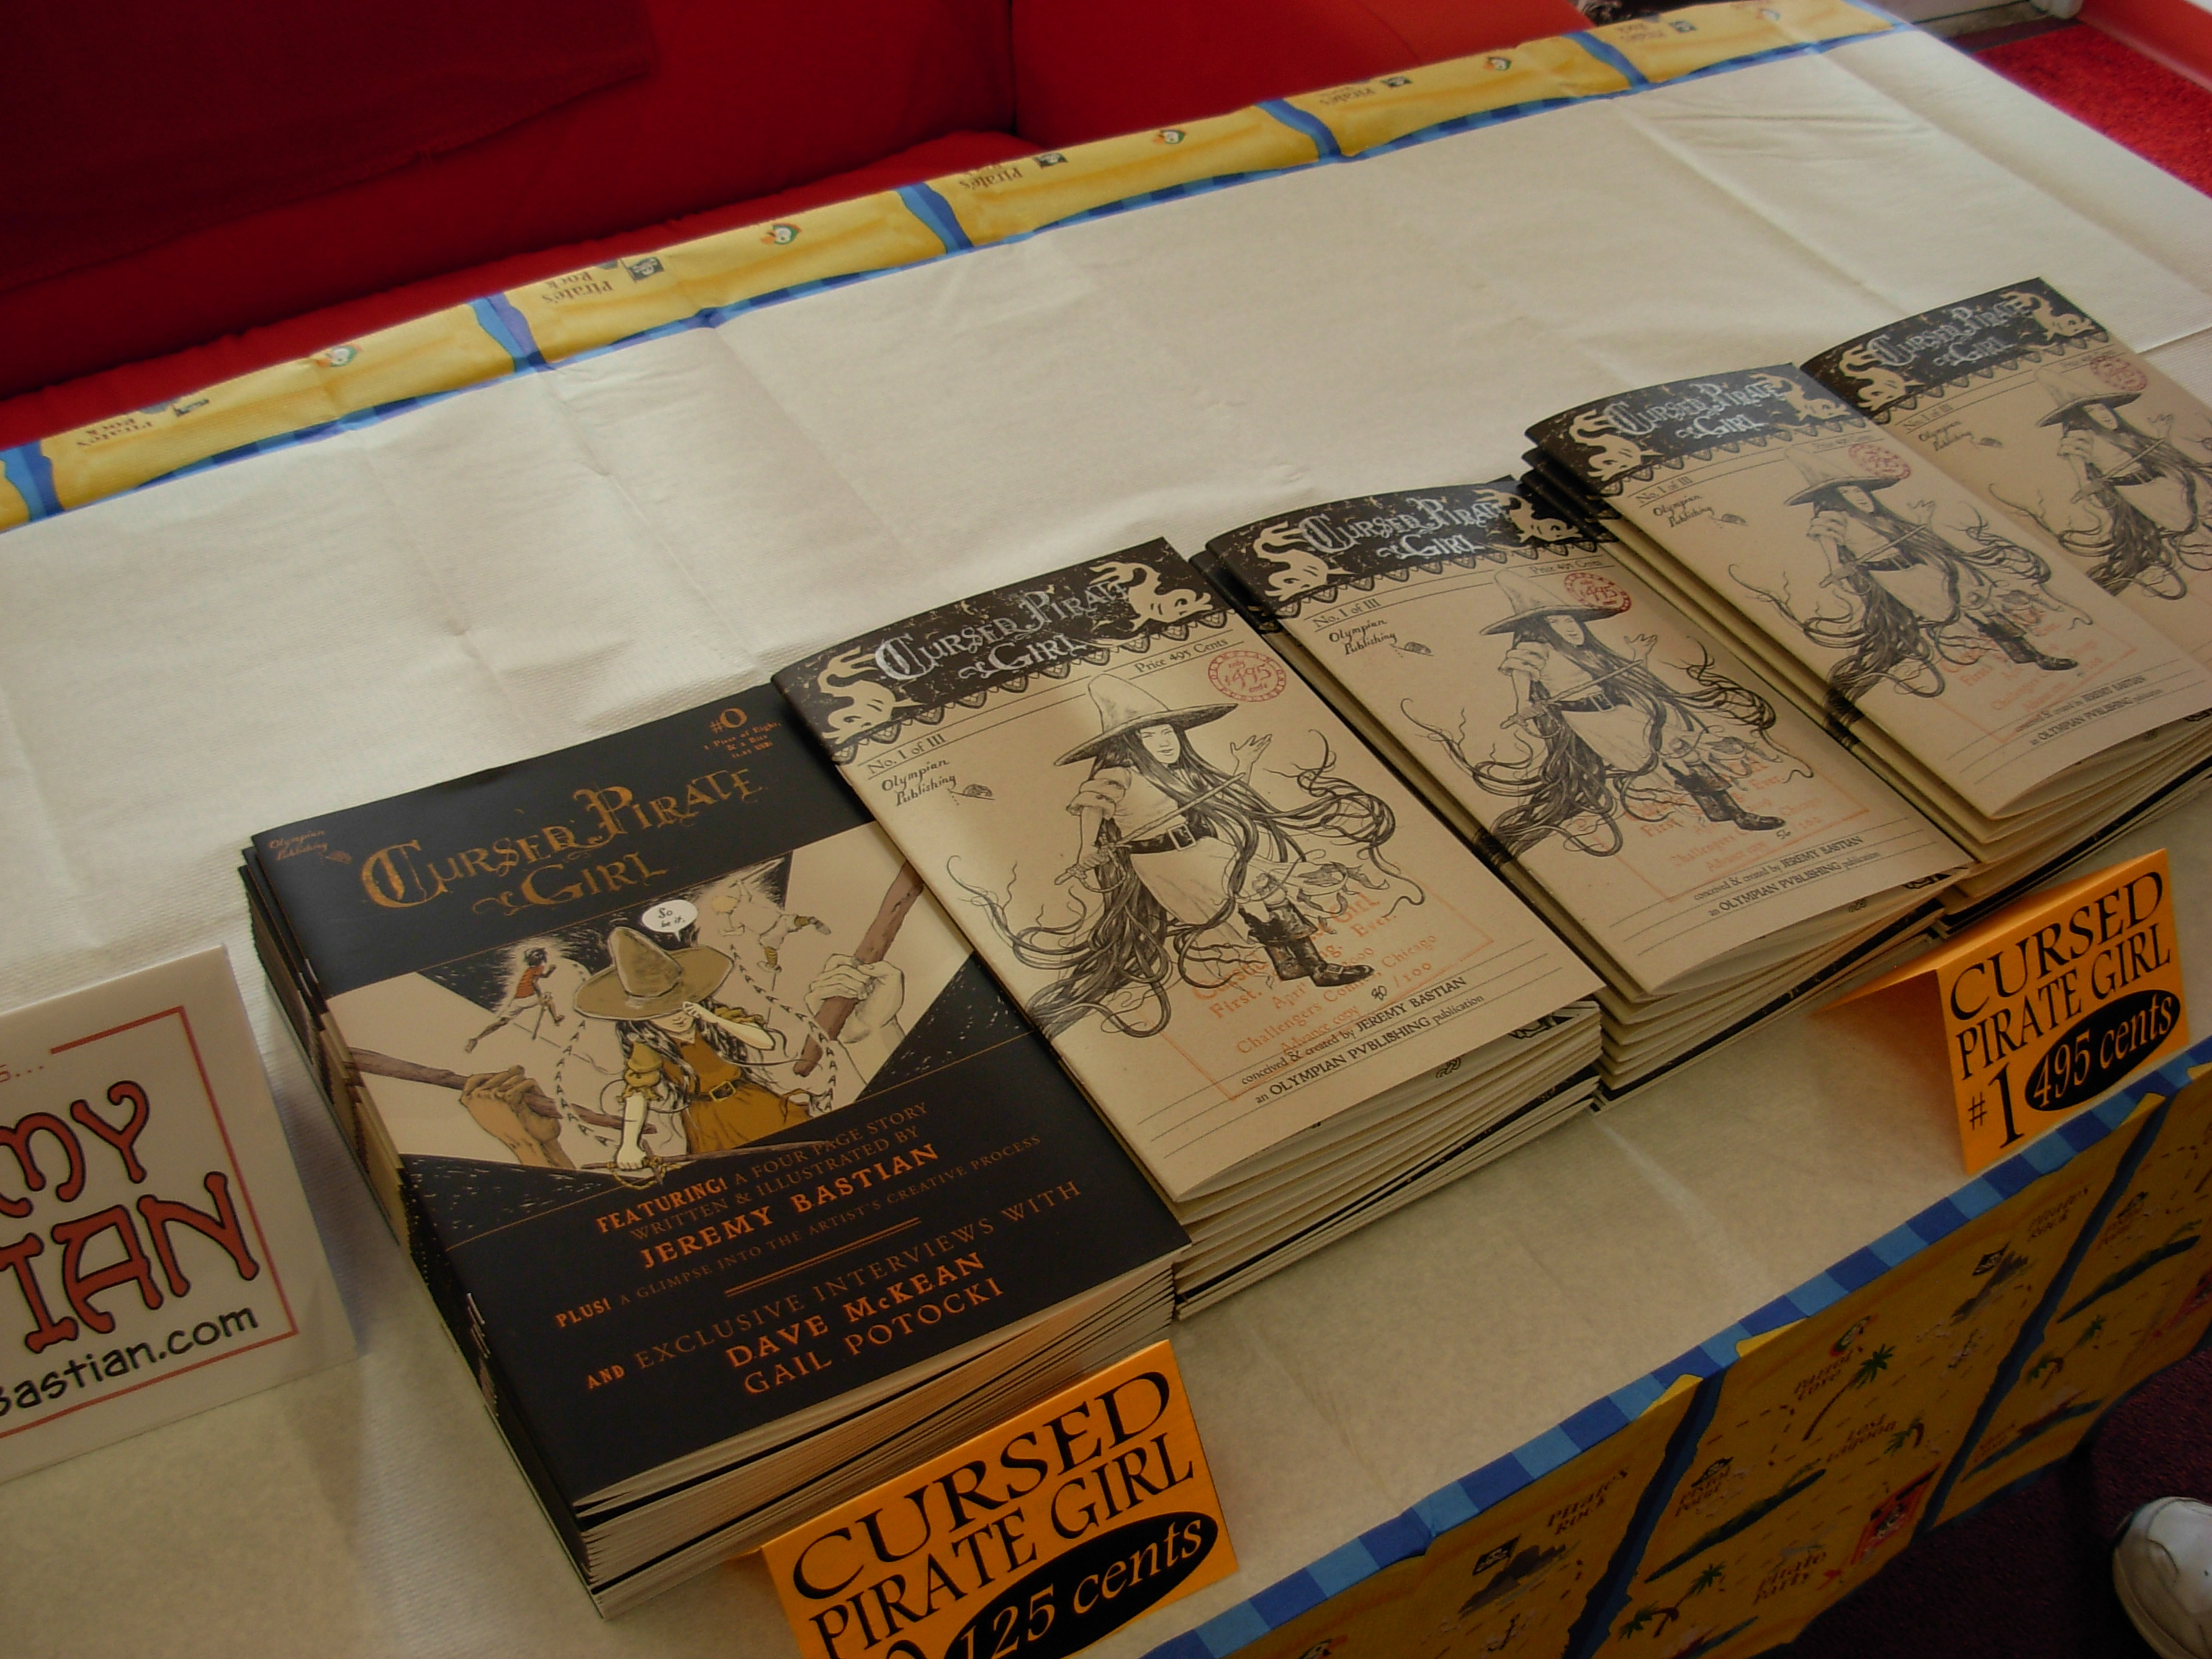 The rare promotional book Cursed Pirate Girl #0, and advance copies of Cursed Pirate Girl #1